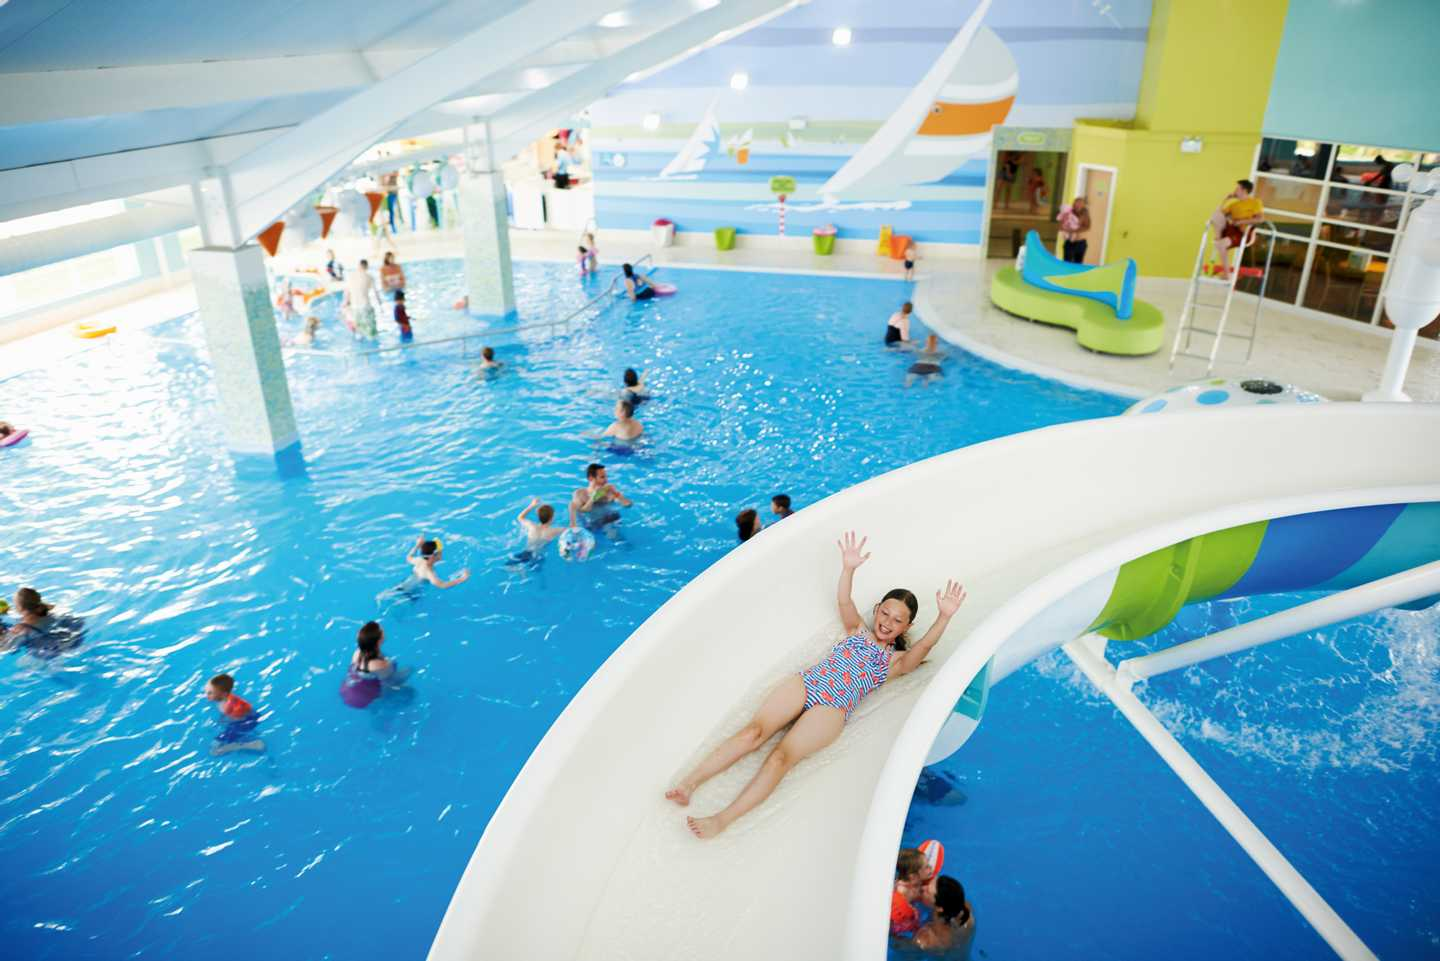 A girl sliding down a water slide in the heated indoor pool